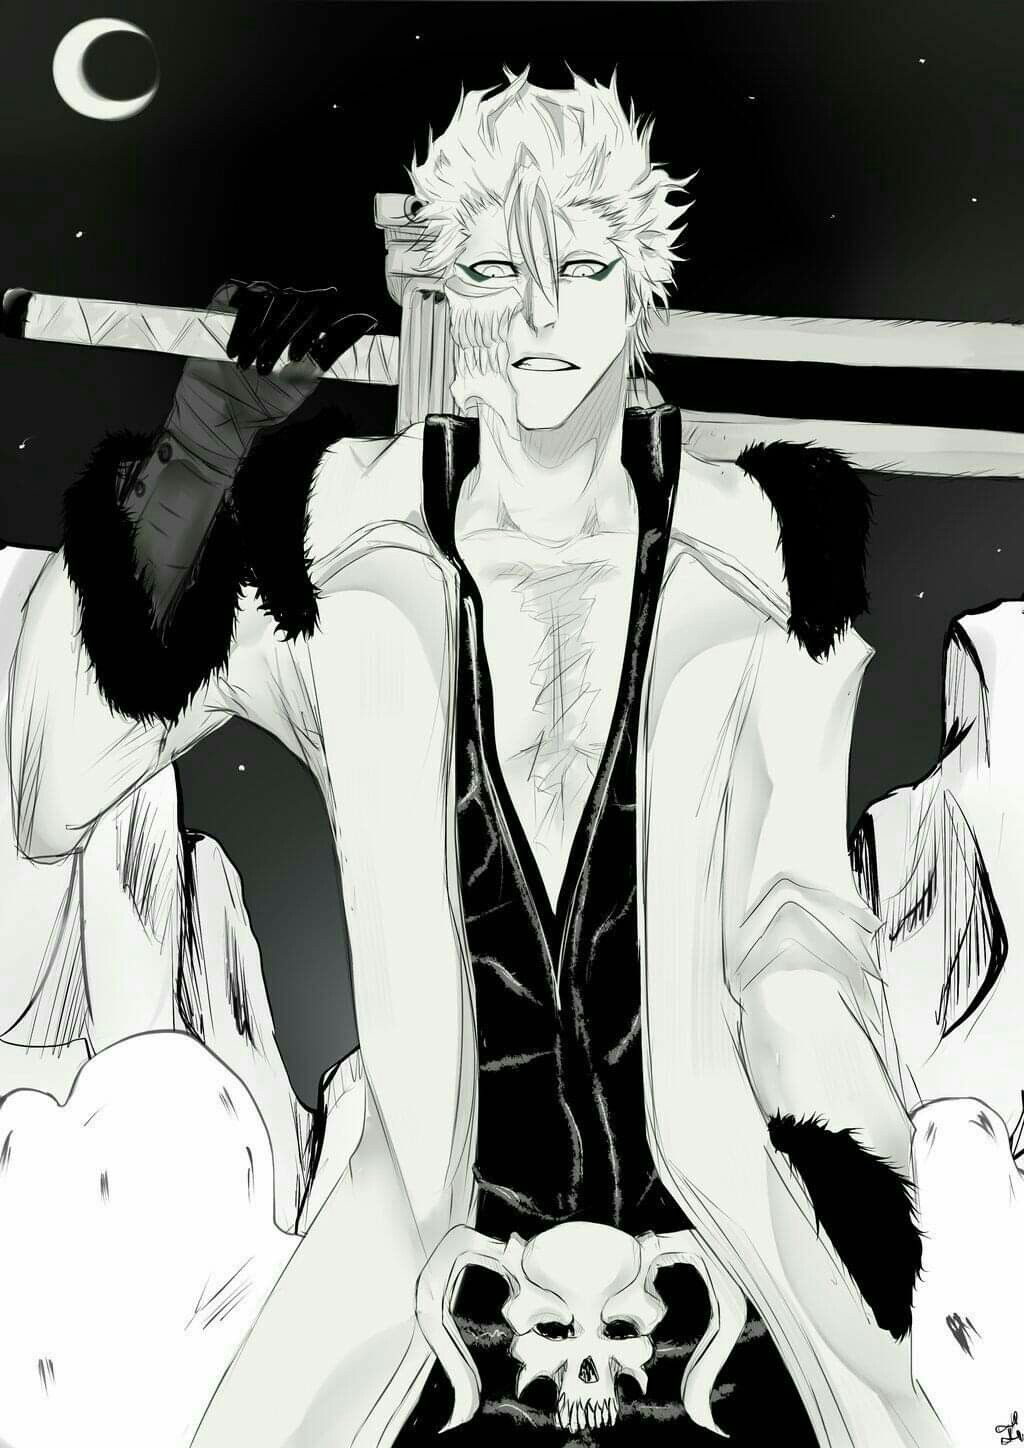 Pin by Hadriel_Redgrave on Anime Bleach anime, Bleach